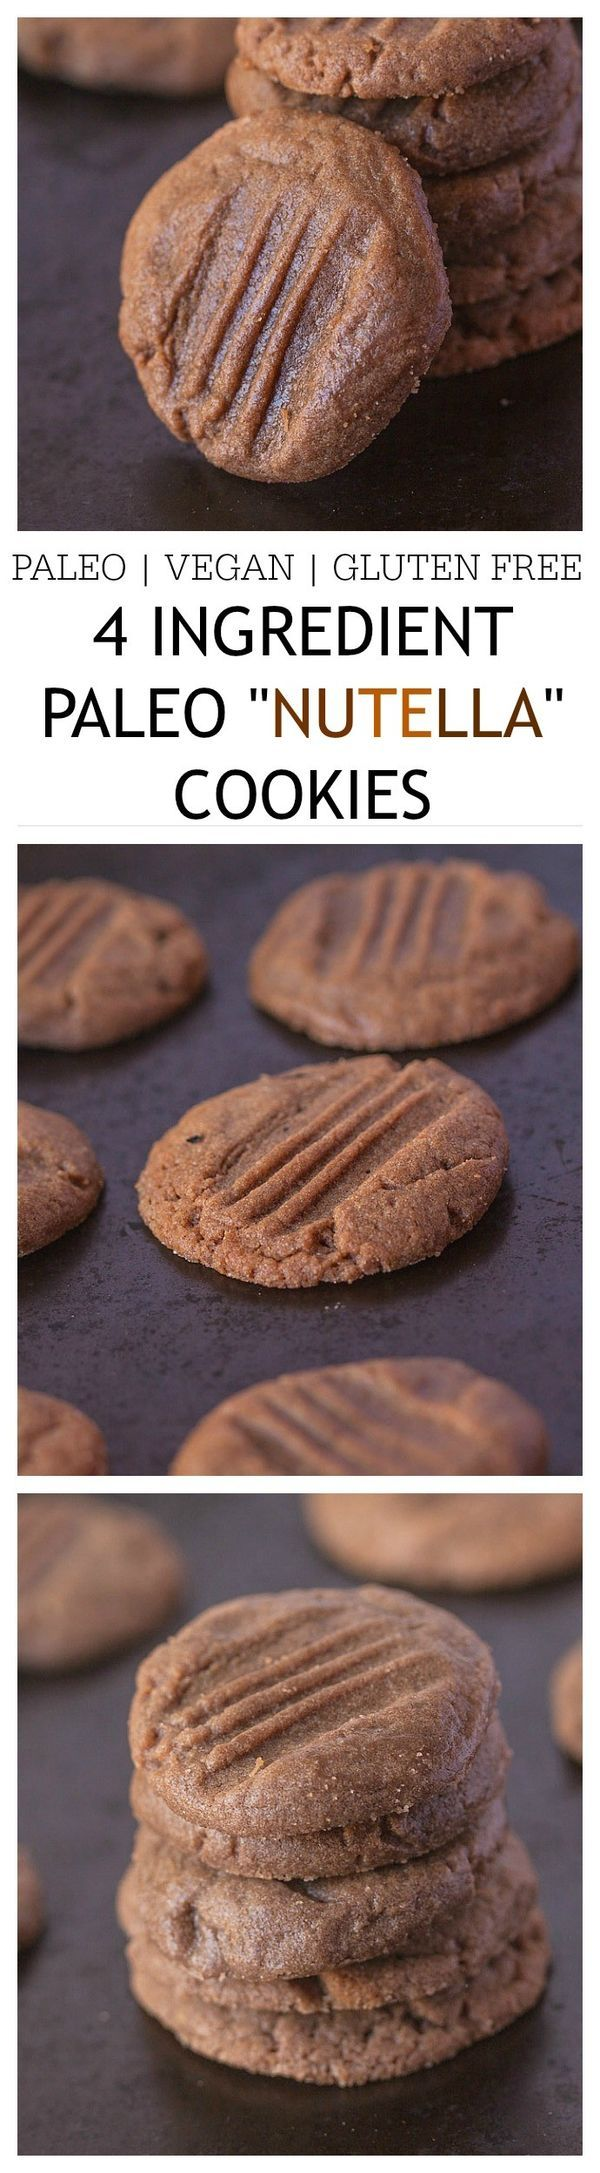 """Healthy 4 Ingredient Paleo """"Nutella"""" Cookies-  1 bowl, 10 minutes and you'll have chewy, delicious and healthy cookies ready! Paleo, gluten free and a vegan option too! @thebigmansworld - thebigmansworld.com"""